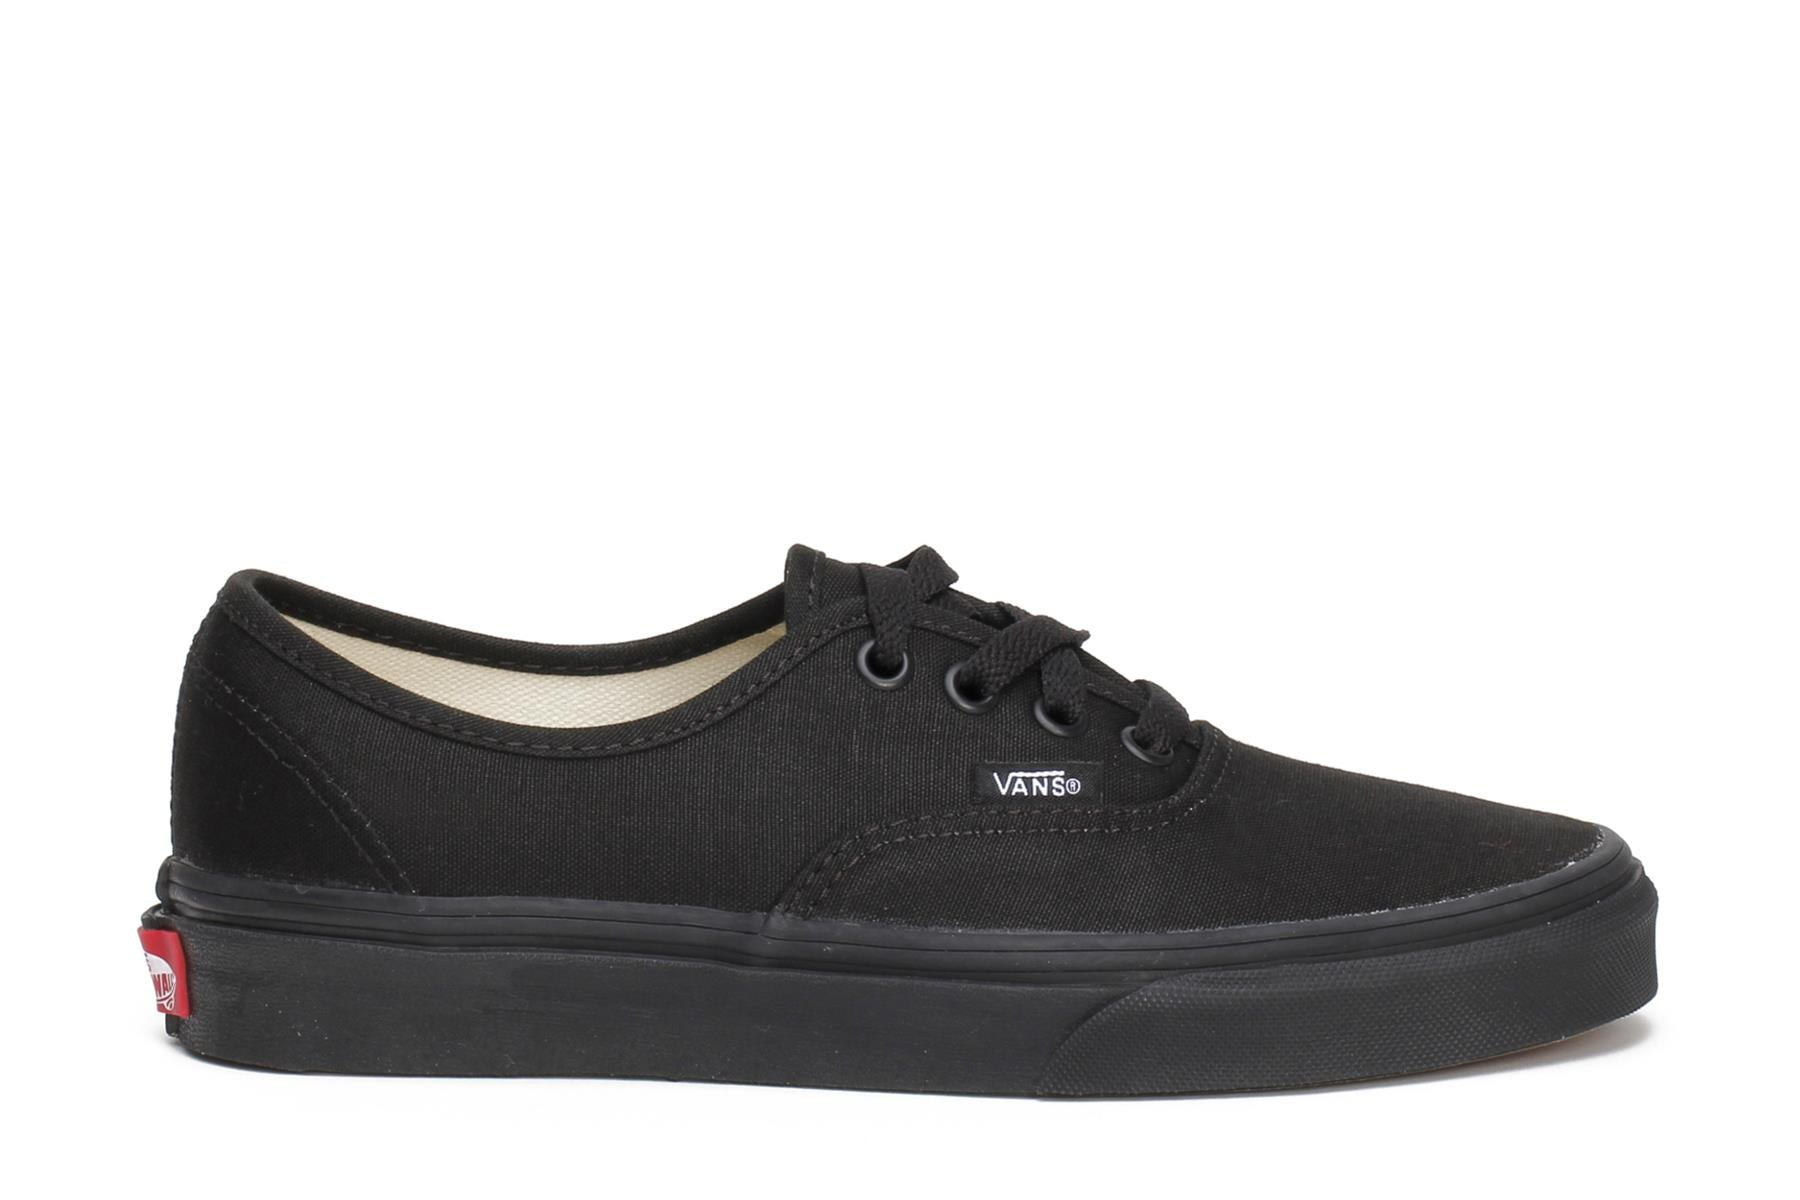 vans-unisex-authentic-skate-sneakers-black-black-canvas-vn-0ee3bka-main